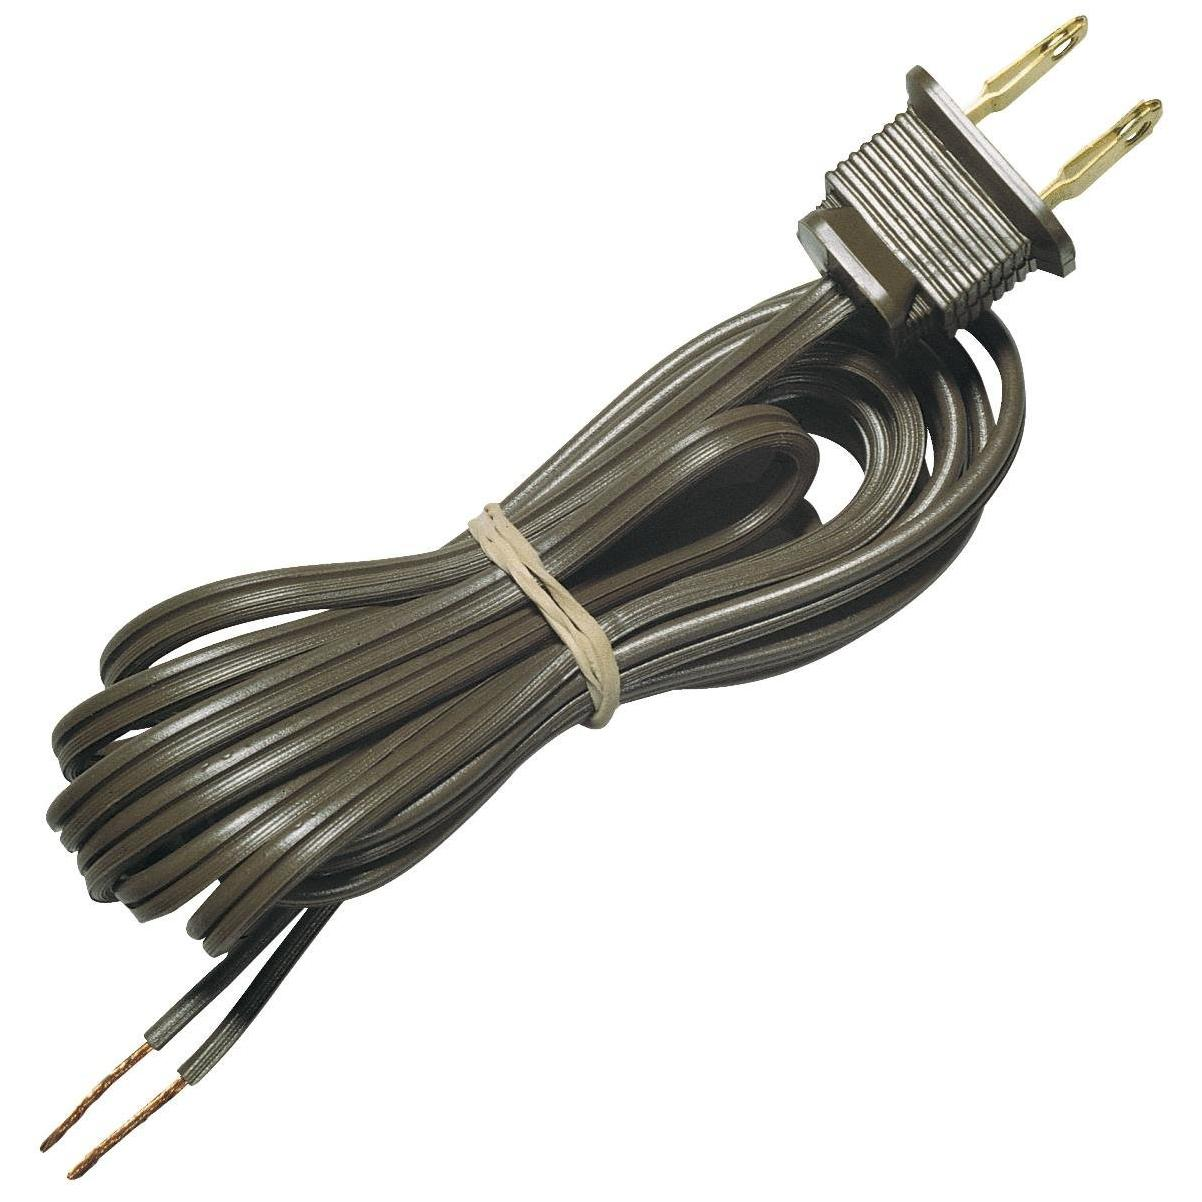 Westinghouse 8 Ft 18 Ga Brown, Replacement Lamp Cord With Flat Plug